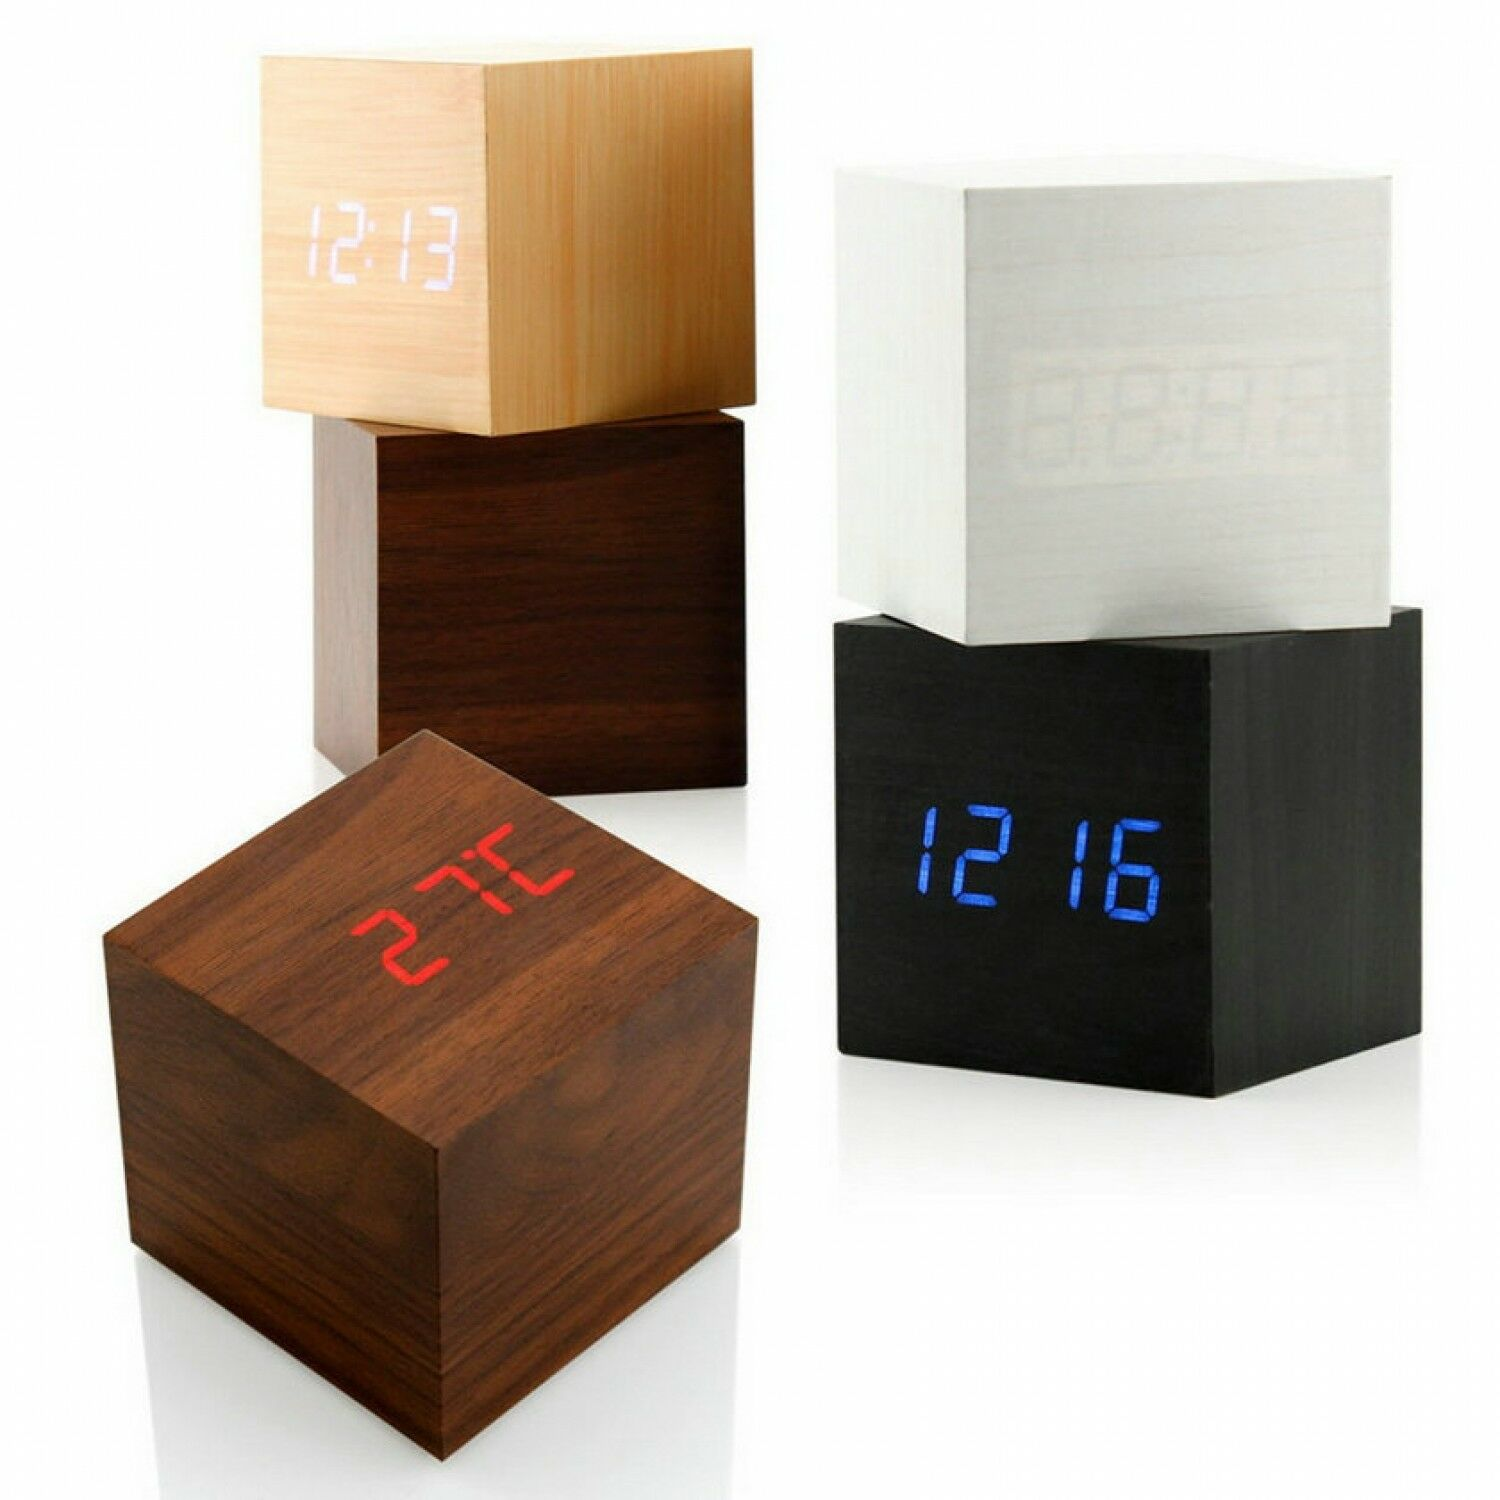 LED Digital Alarm Clock Wooden Thermometer USB Touch Activate Date Voice Display